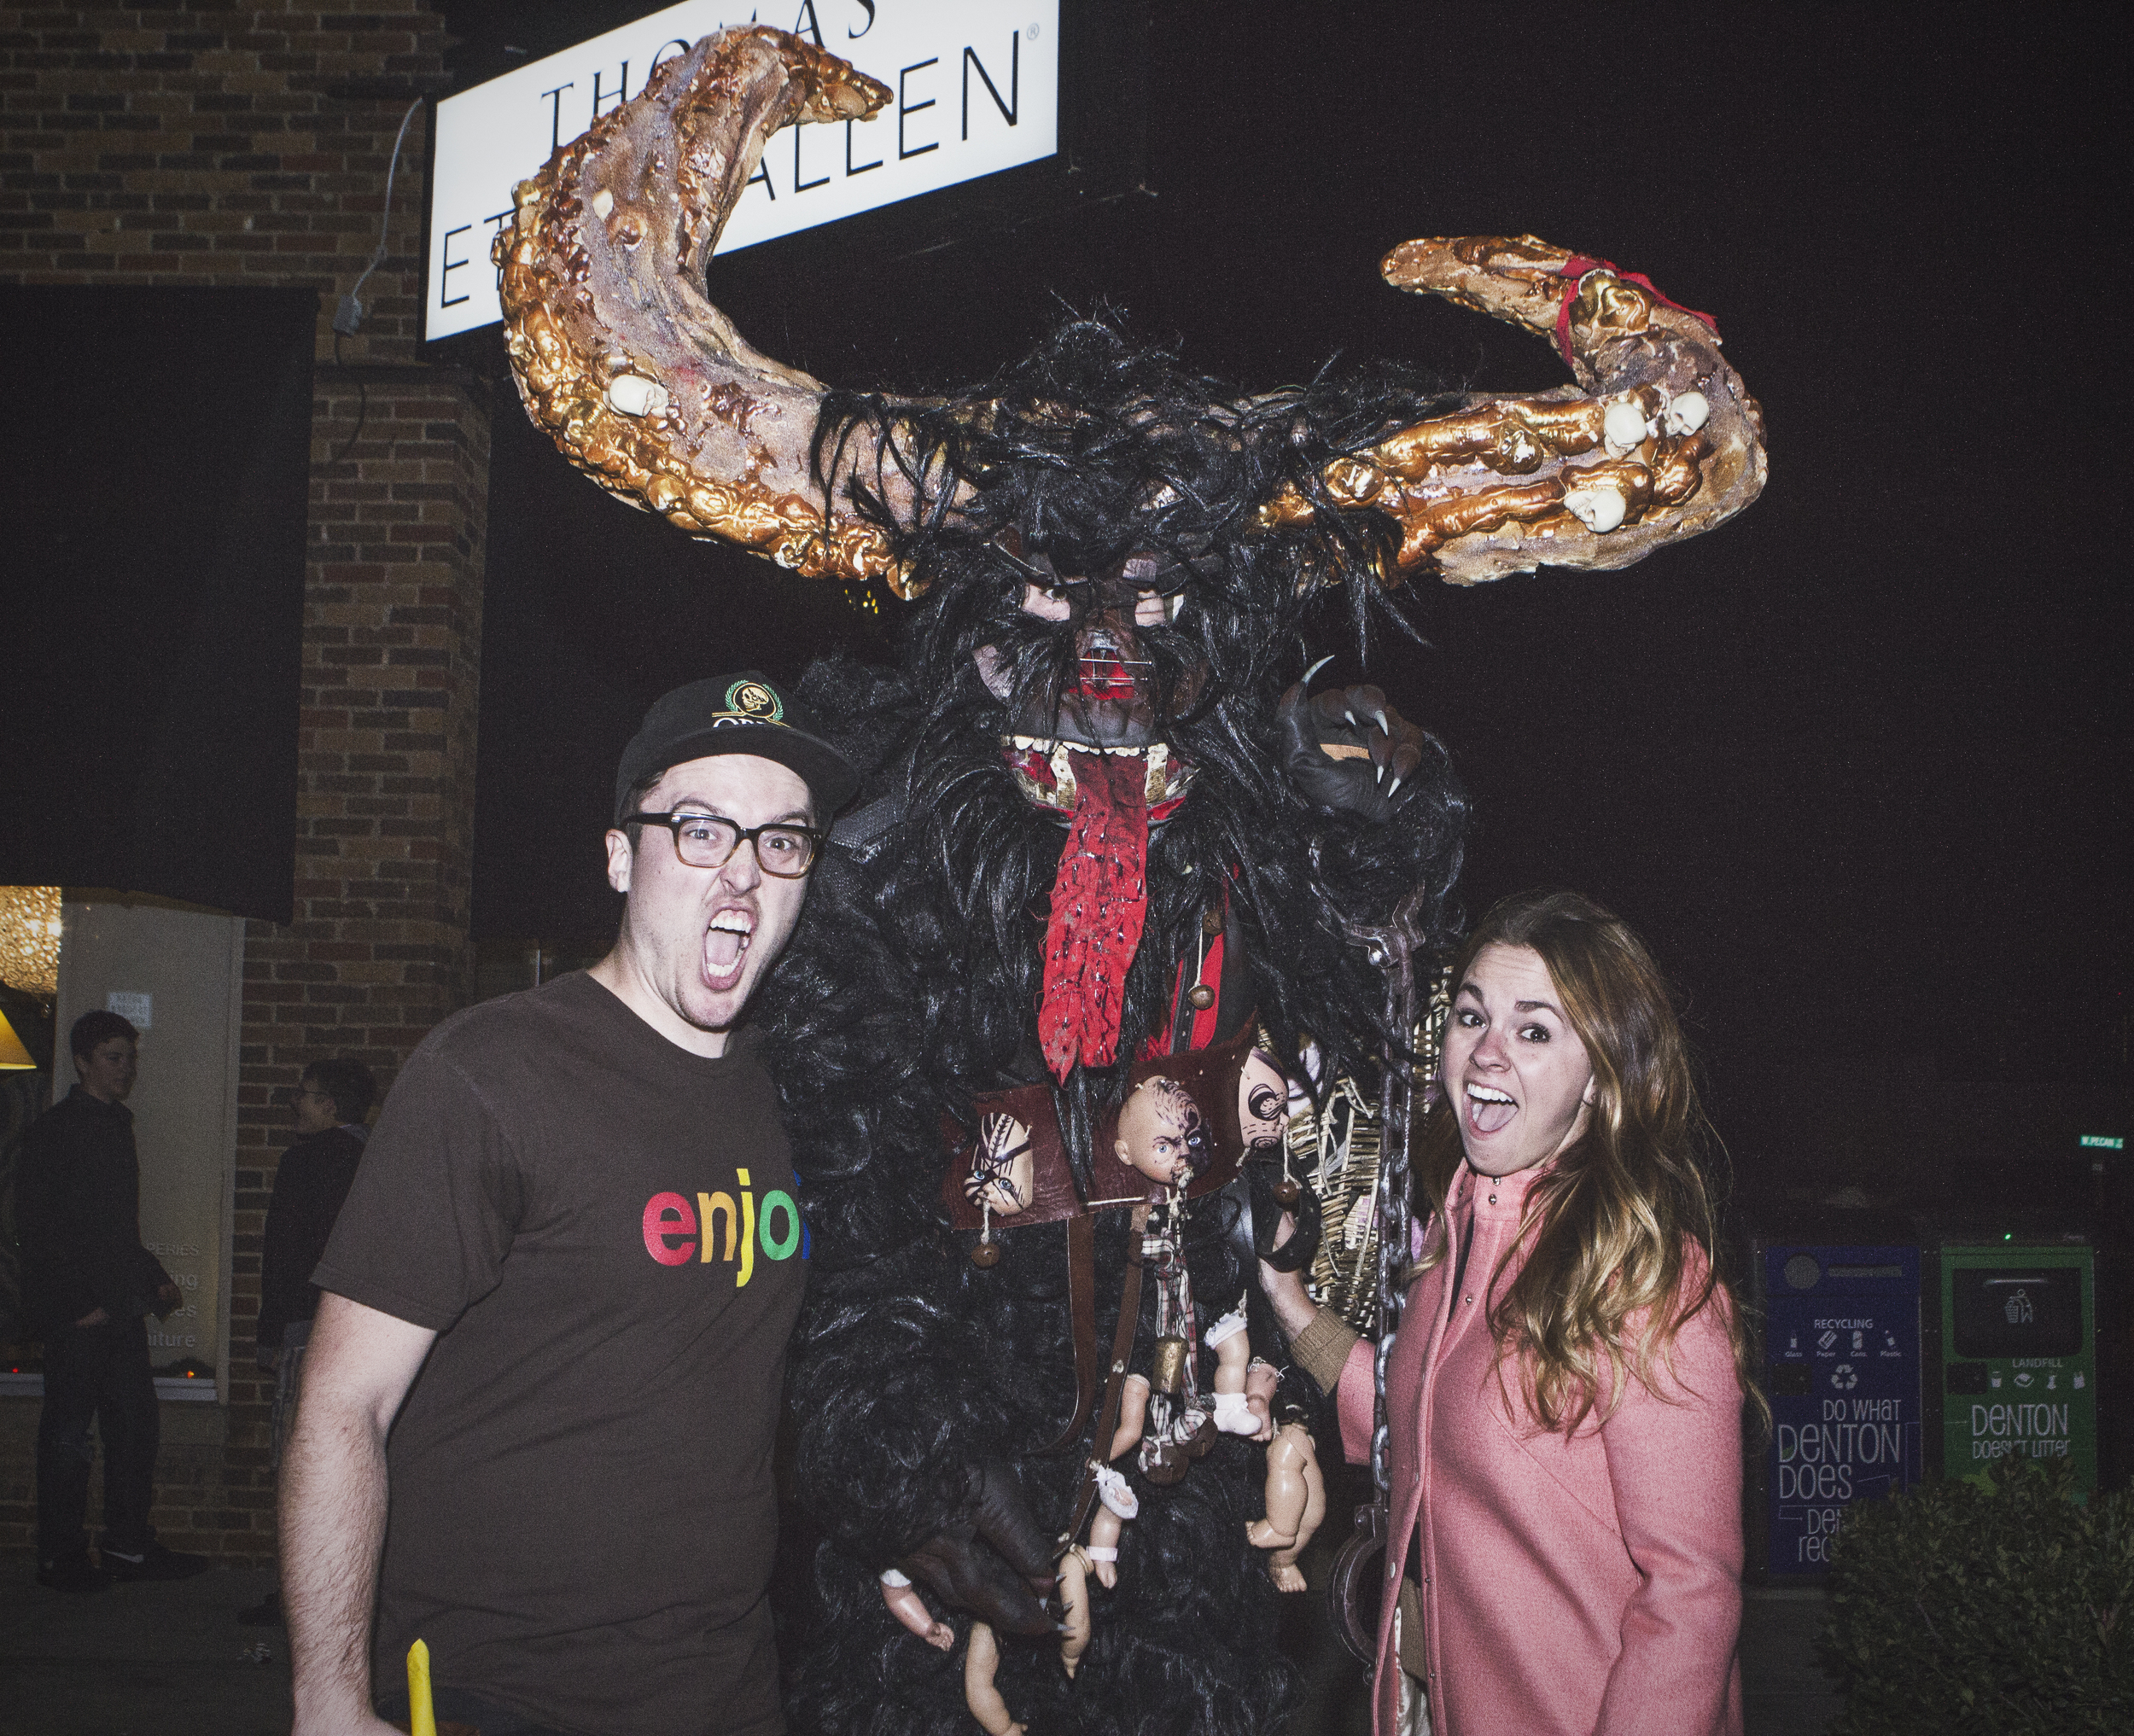 After making a later appearance than previously planned,Krampus was sadly asked to leave the square (or relocate a few blocks away) on Friday evening, but not before giving away all of his presents and eating at least a dozen children. Next year, he hopes to have a permit and spend some more time in Denton before flying out to towns with worse children (such as Phoenix).